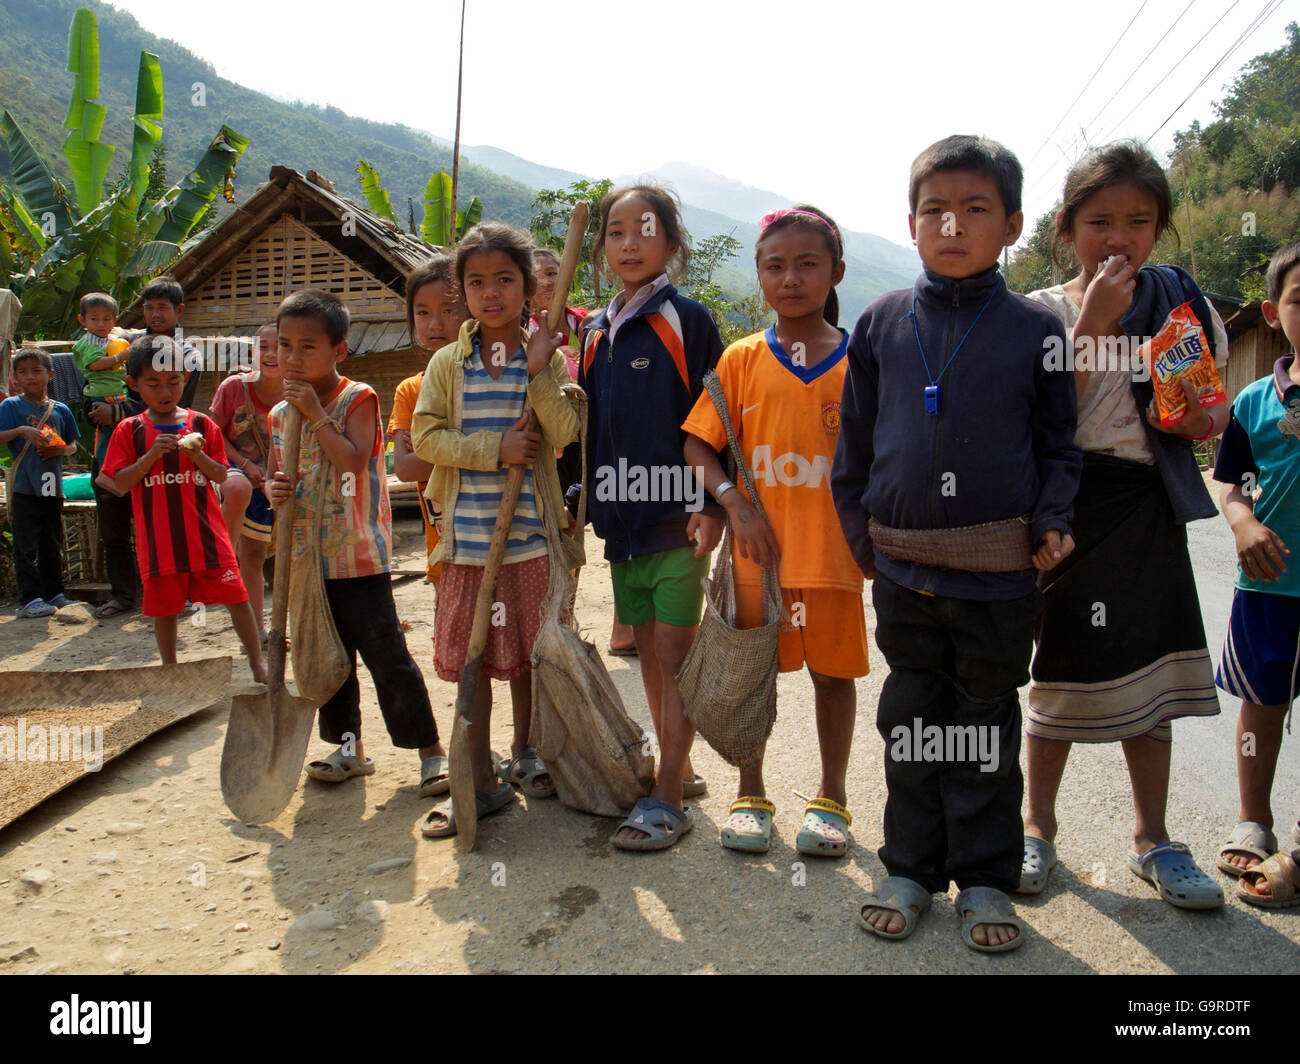 children in village at Mekong river, province Oudomxay, Laos, Asia Stock Photo